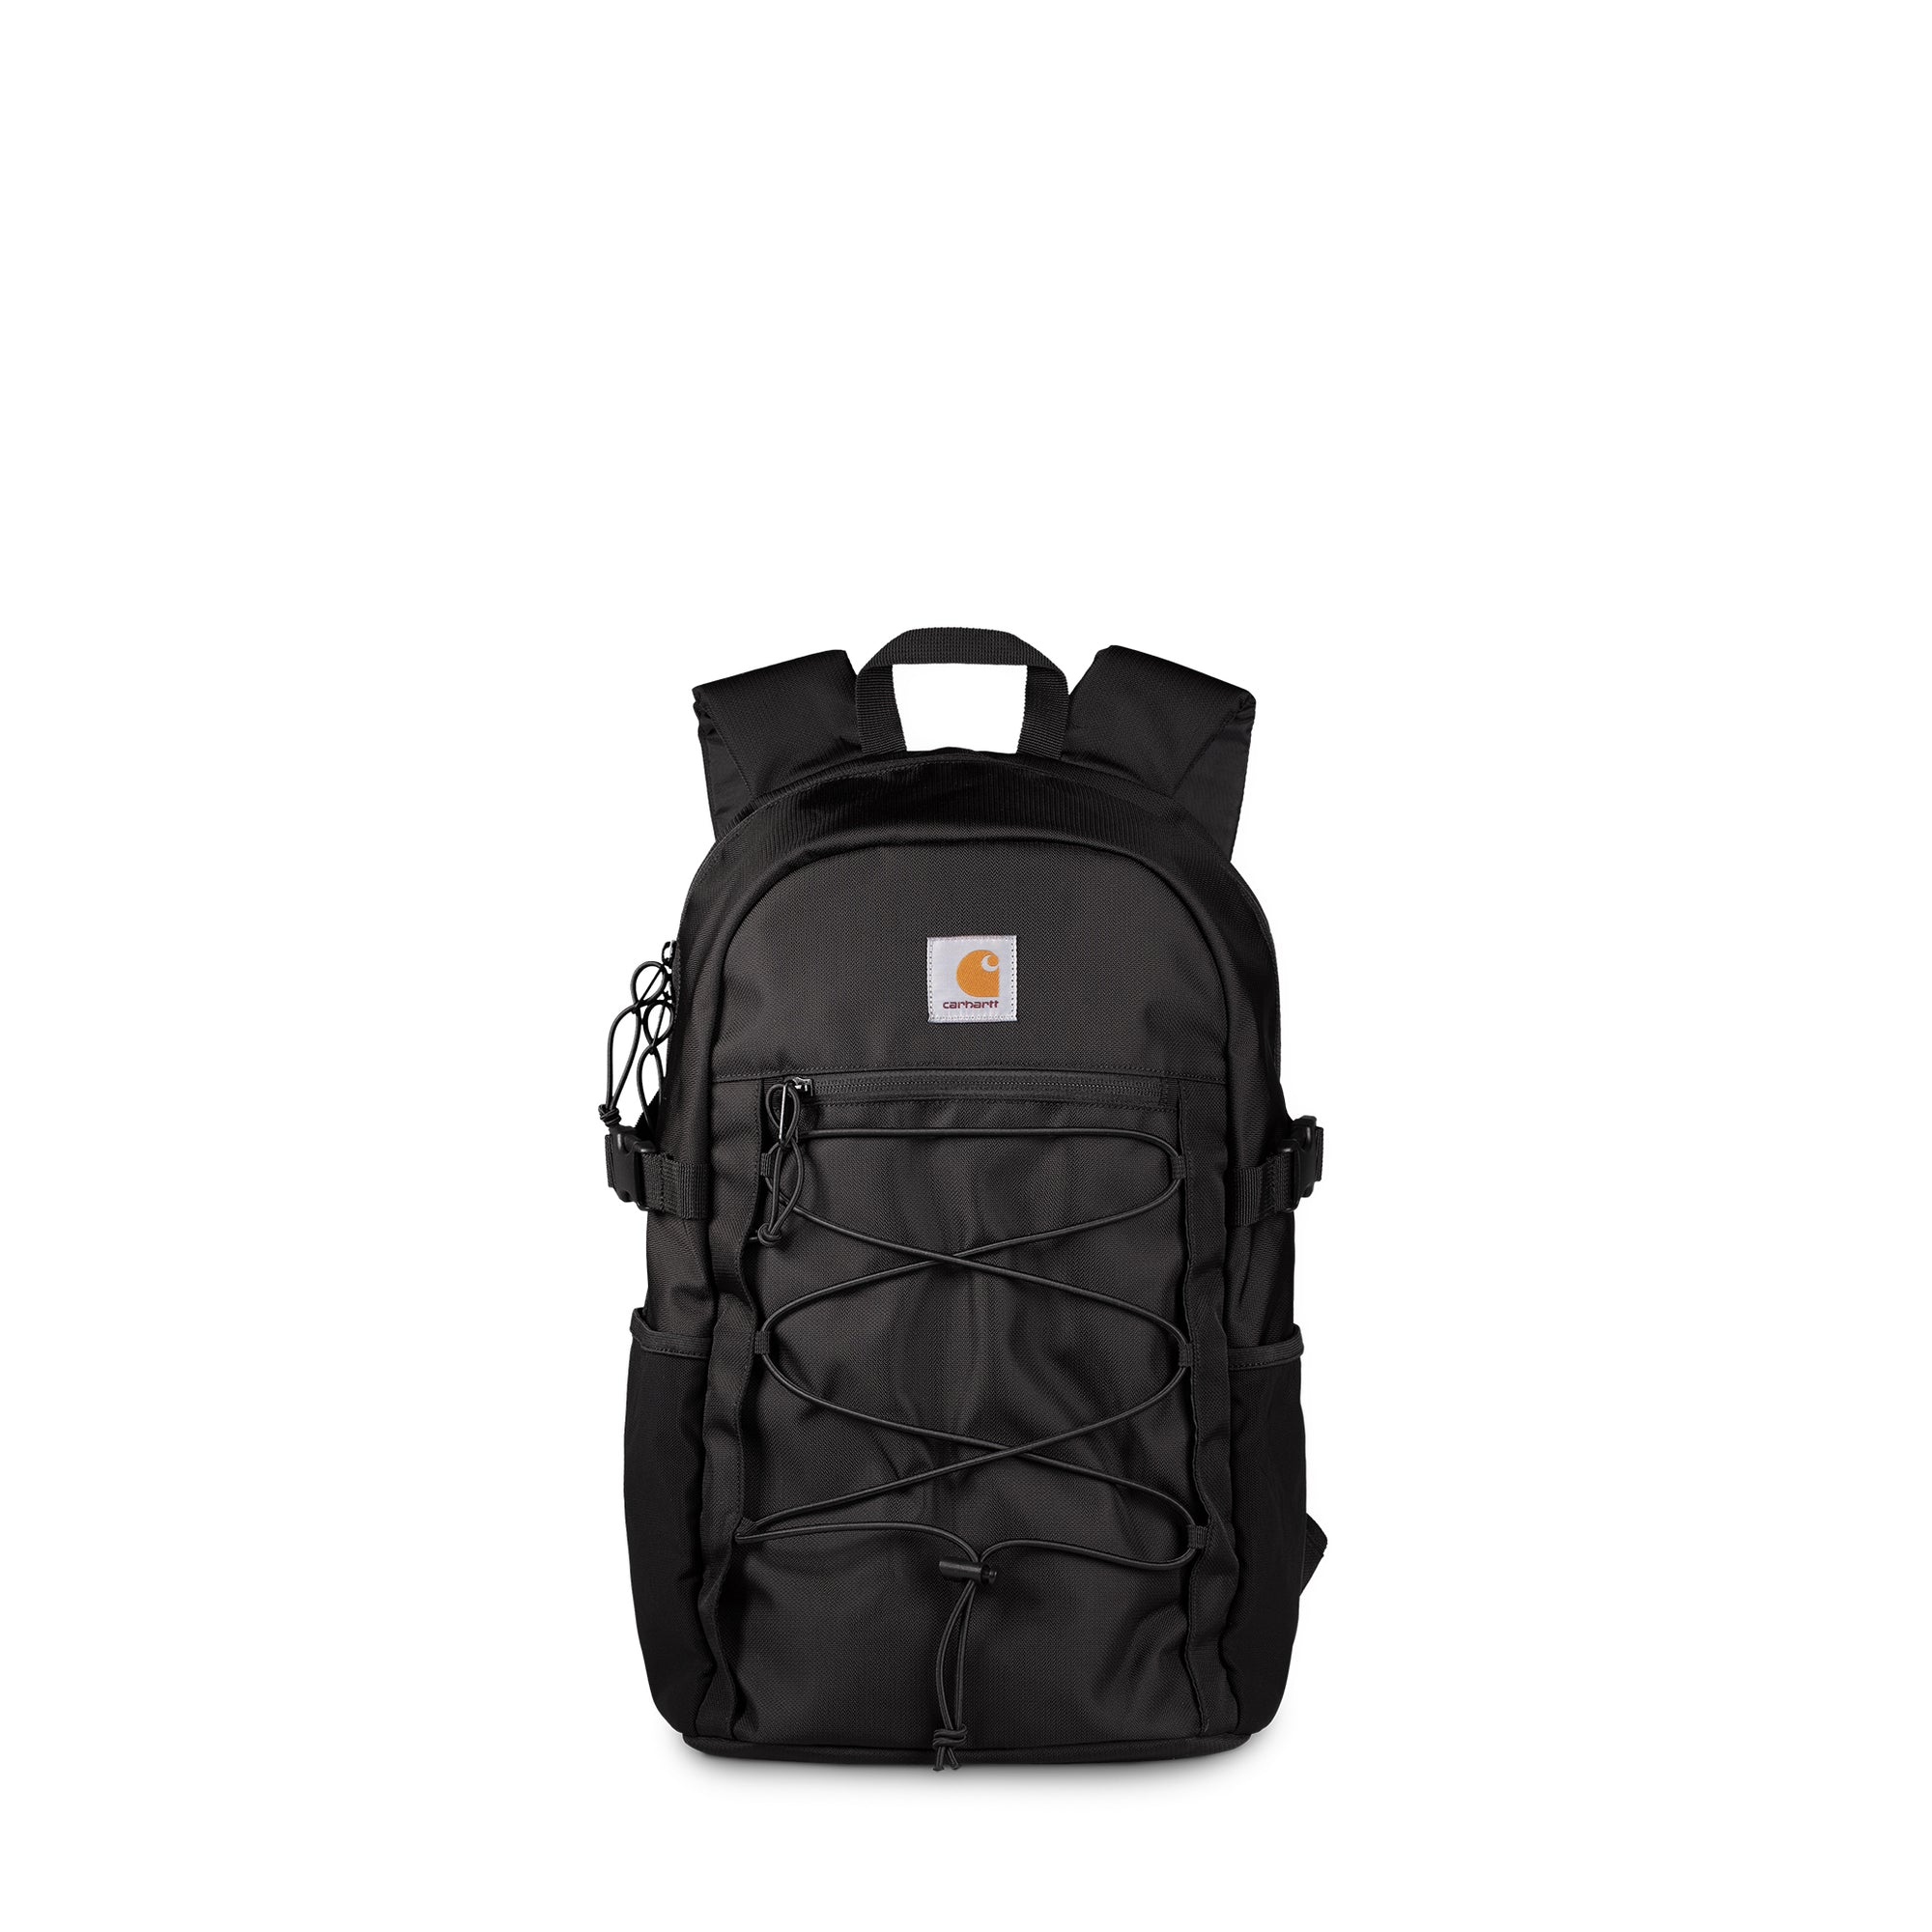 Carhartt WIP Delta Backpack: Black - The Union Project